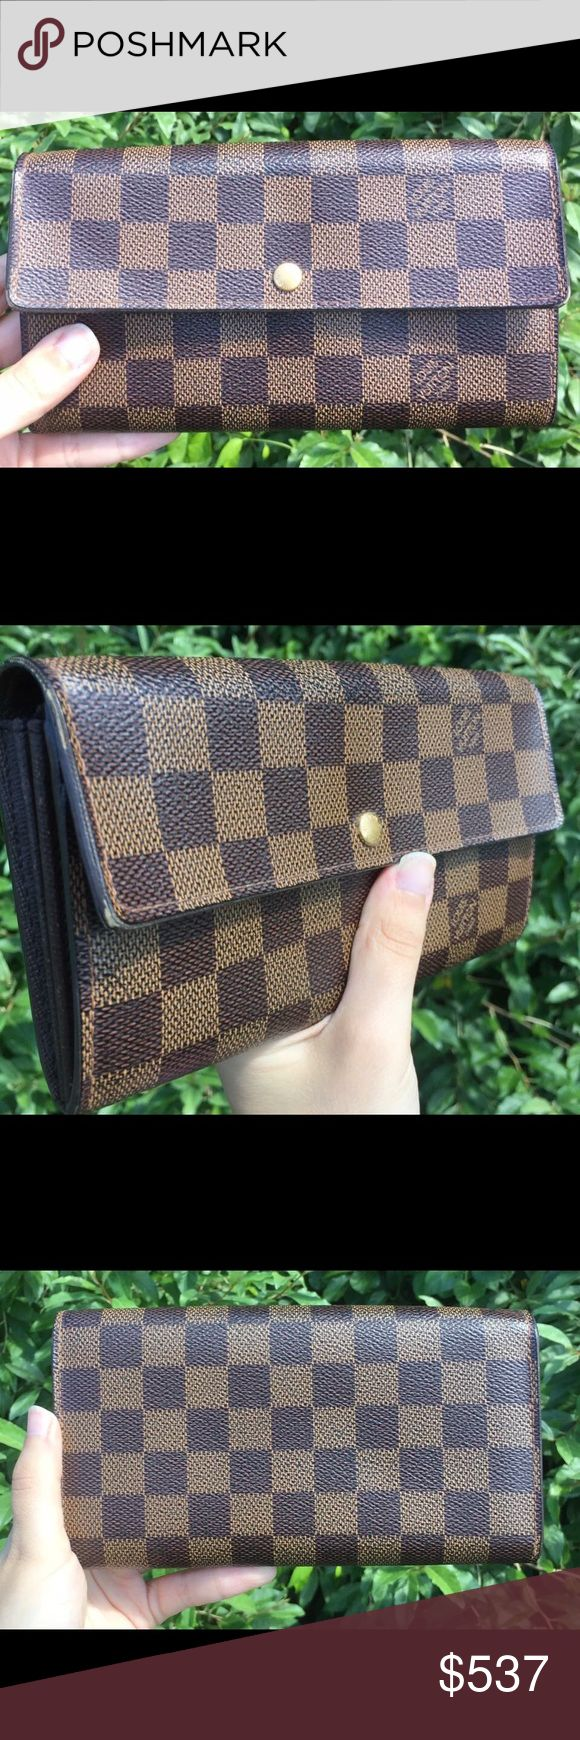 Louis Vuitton Damier Wallet 100% AUTHENTIC- Great Condition - Price firm no trades - buy for less & more pics at www.chicboutiqueconsignments.com! MA's #1 designer consignment boutique! Louis Vuitton Bags Wallets